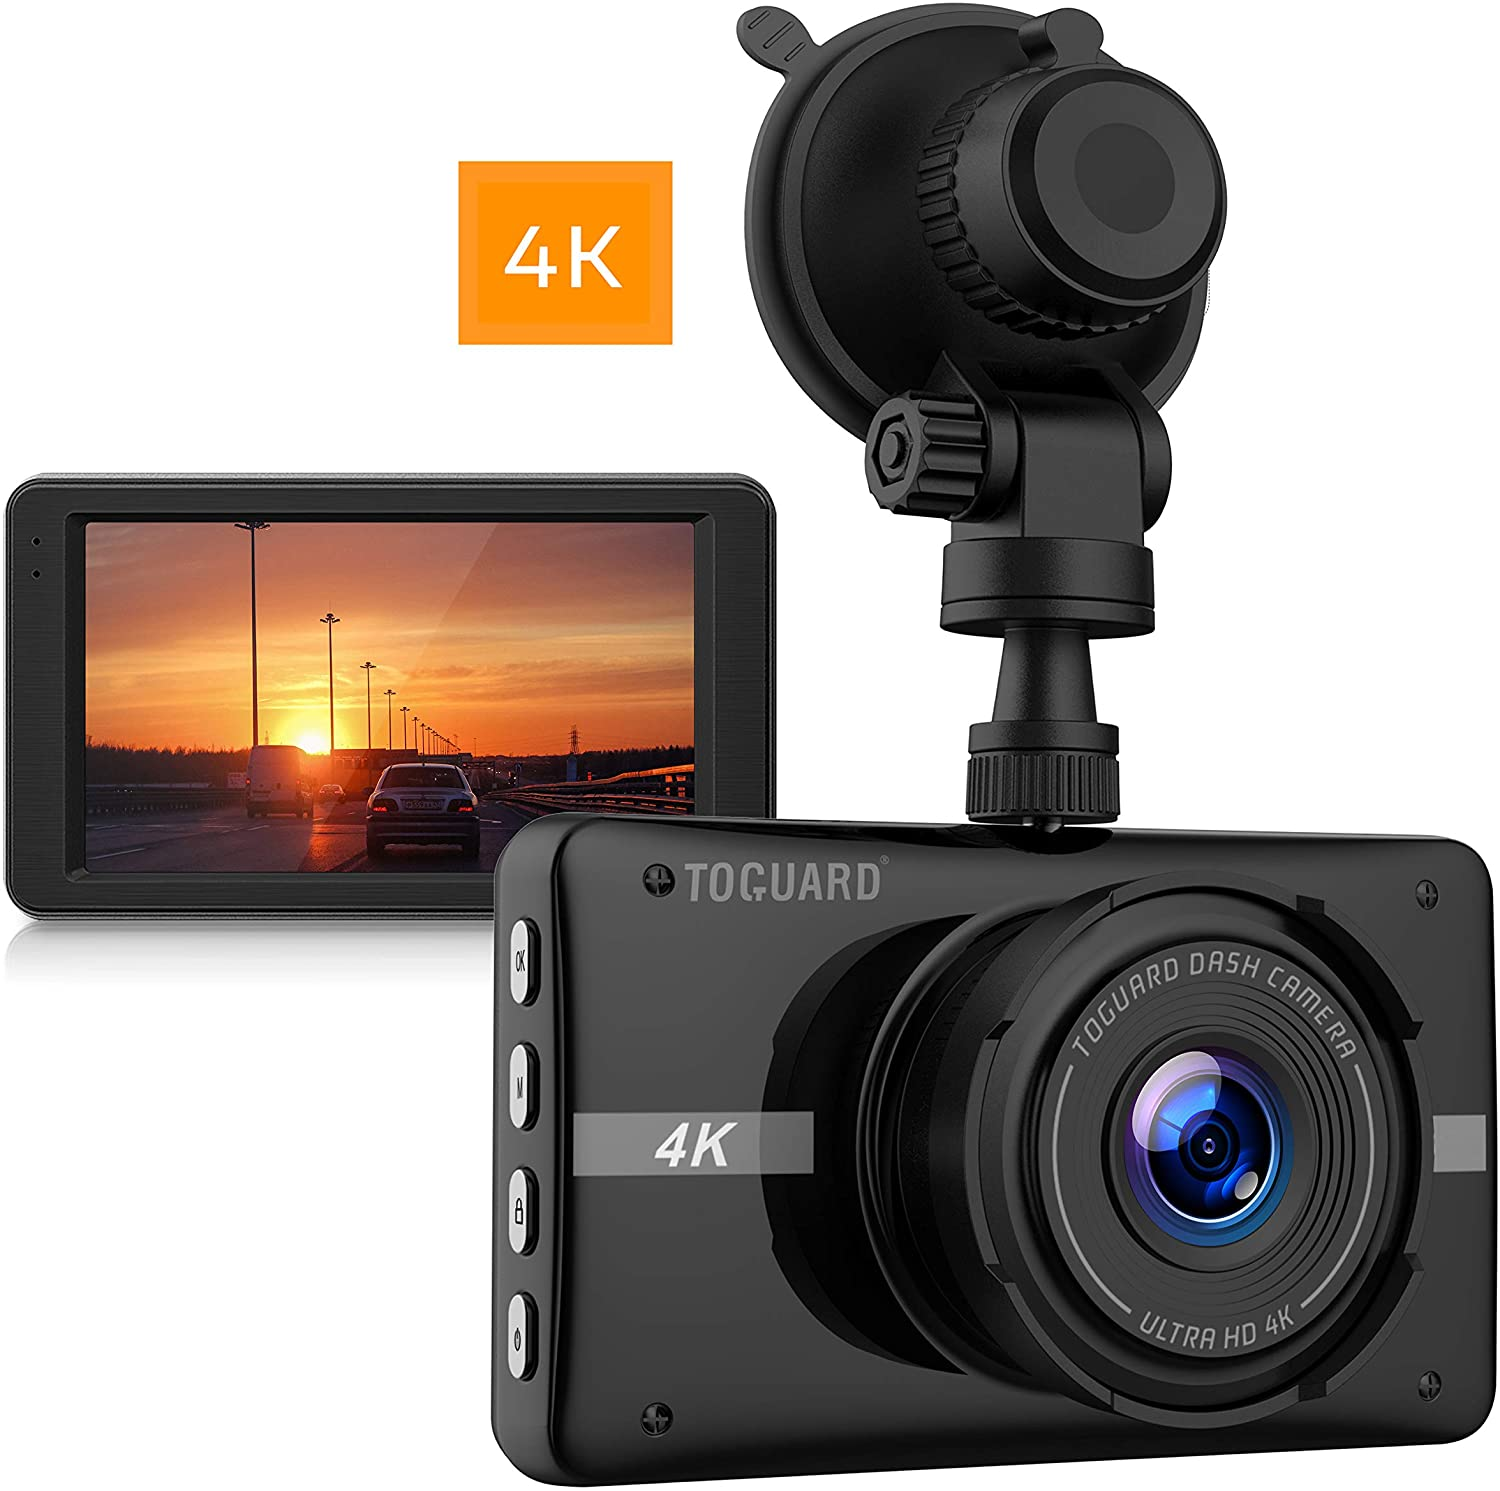 Toguard 4k Dash Cam Ultra Hd Car Dash Camera 3 Lcd 170 Wide Angle Dashboard Camera Recorder With Night Vision 24hs Walmart Canada